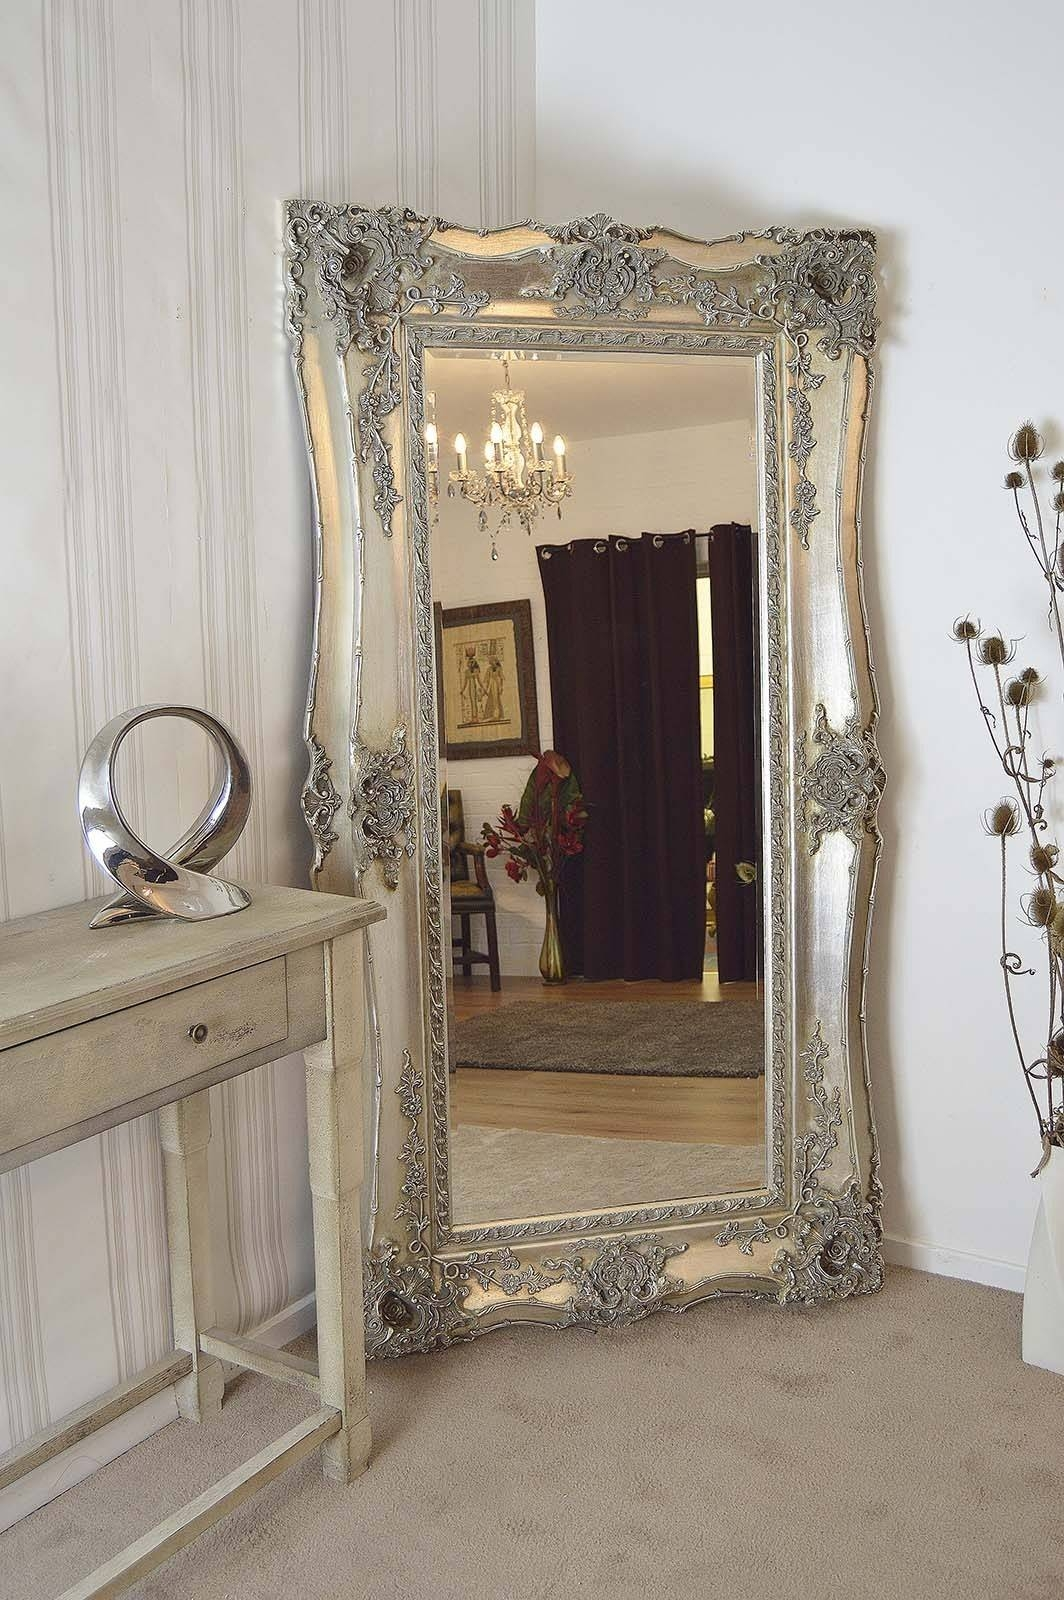 Large Antique Wall Mirror Ornate Frame Antique Ornate Wall Mirrors in Large Vintage Mirrors (Image 10 of 25)